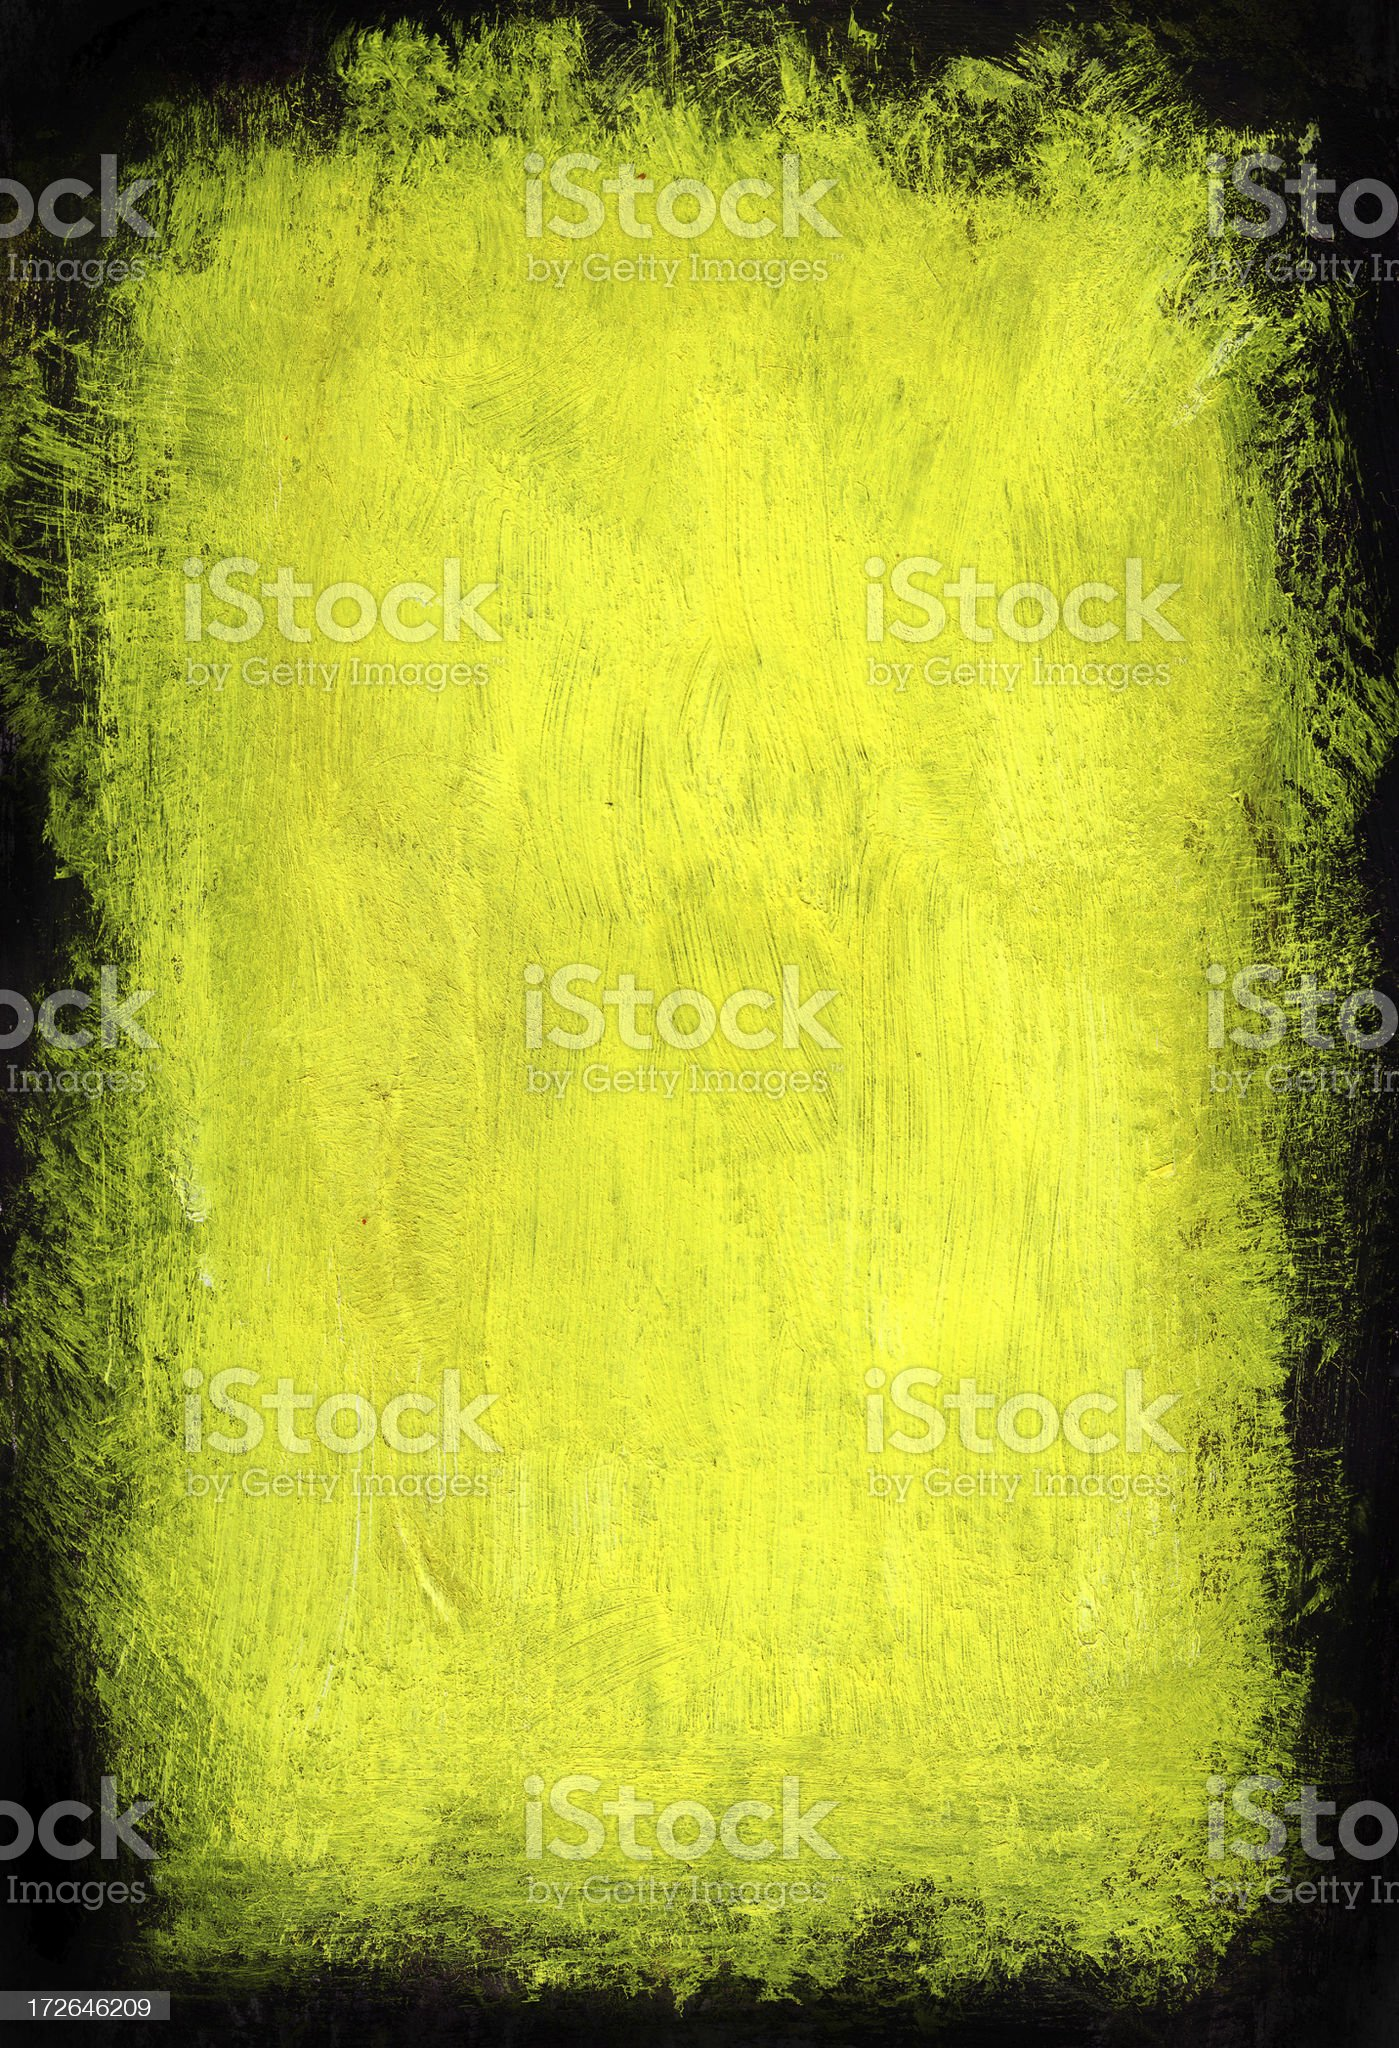 Grunge Background Layer royalty-free stock photo